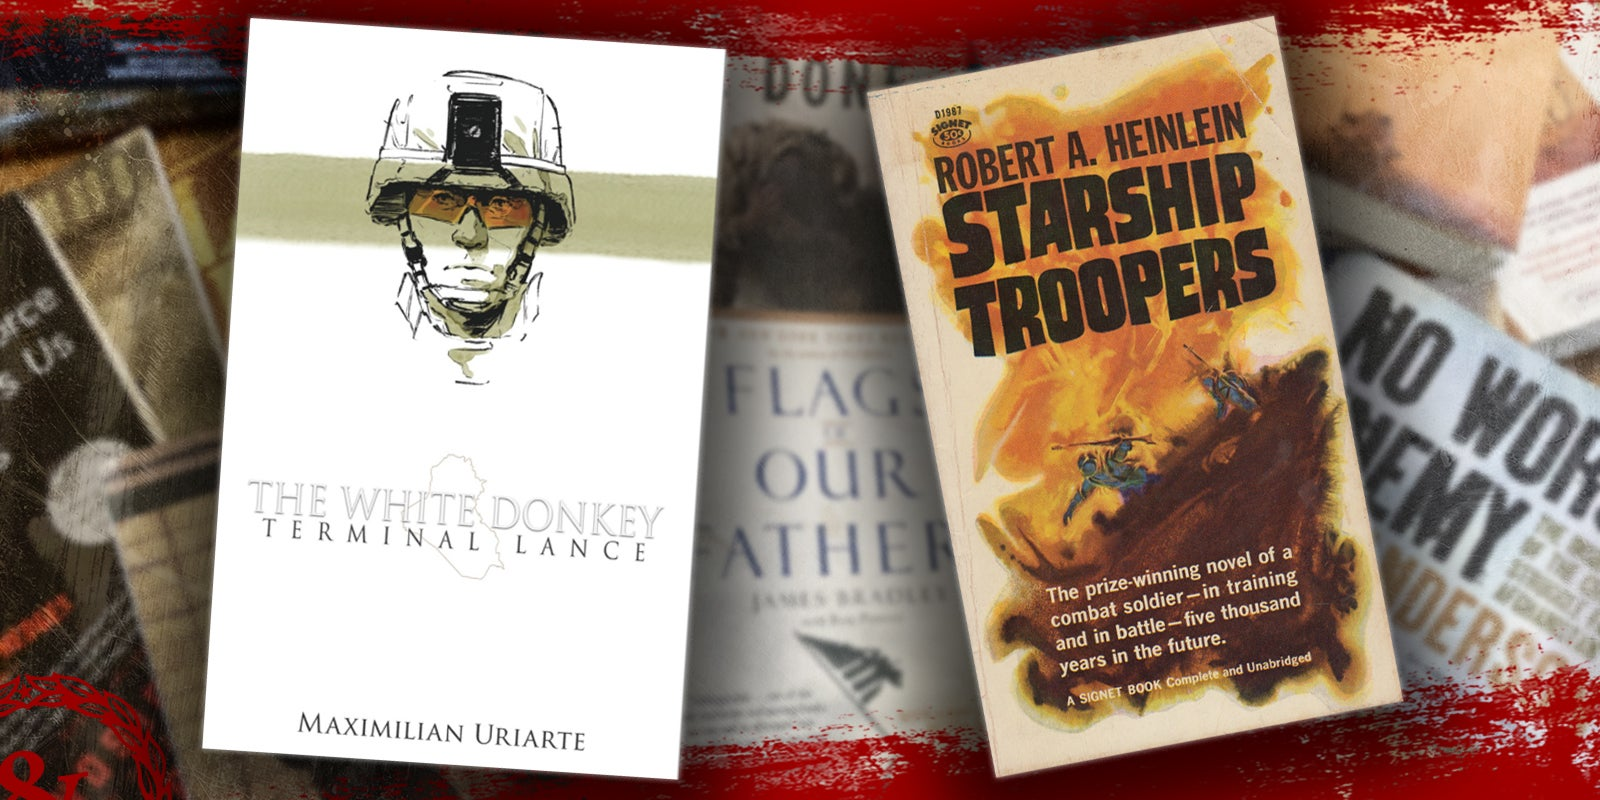 'Starship Troopers' is off the Marine commandant's reading list, but 'White Donkey' by Terminal Lance is in